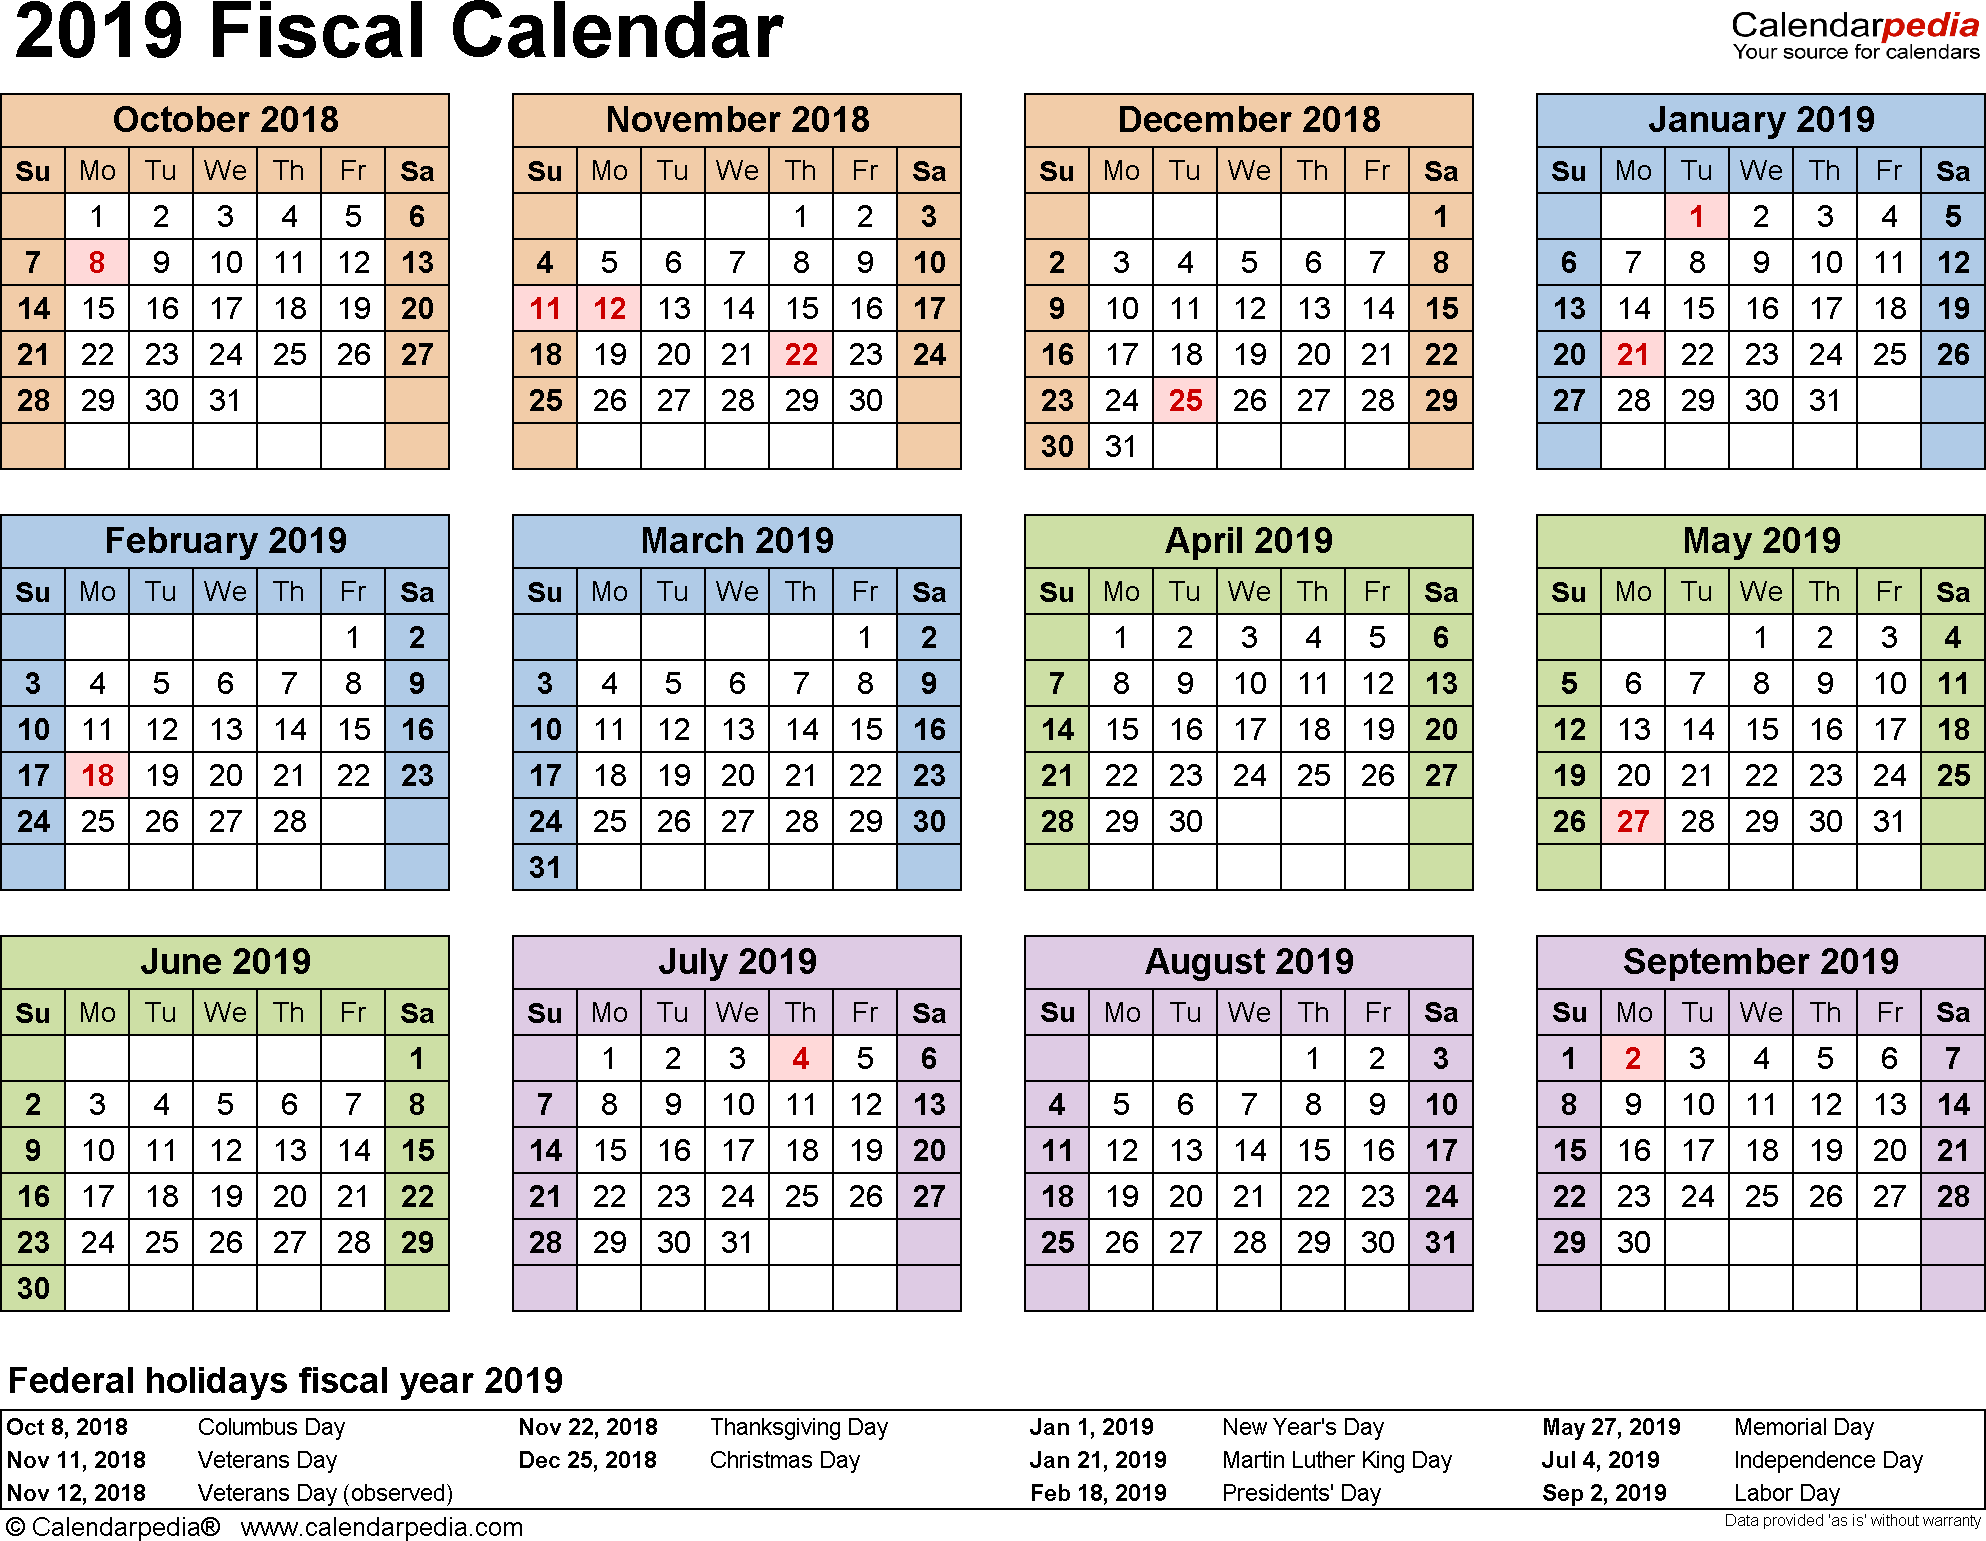 13 Period Calendar 2019 Fiscal calendars 2019 as free printable Word templates